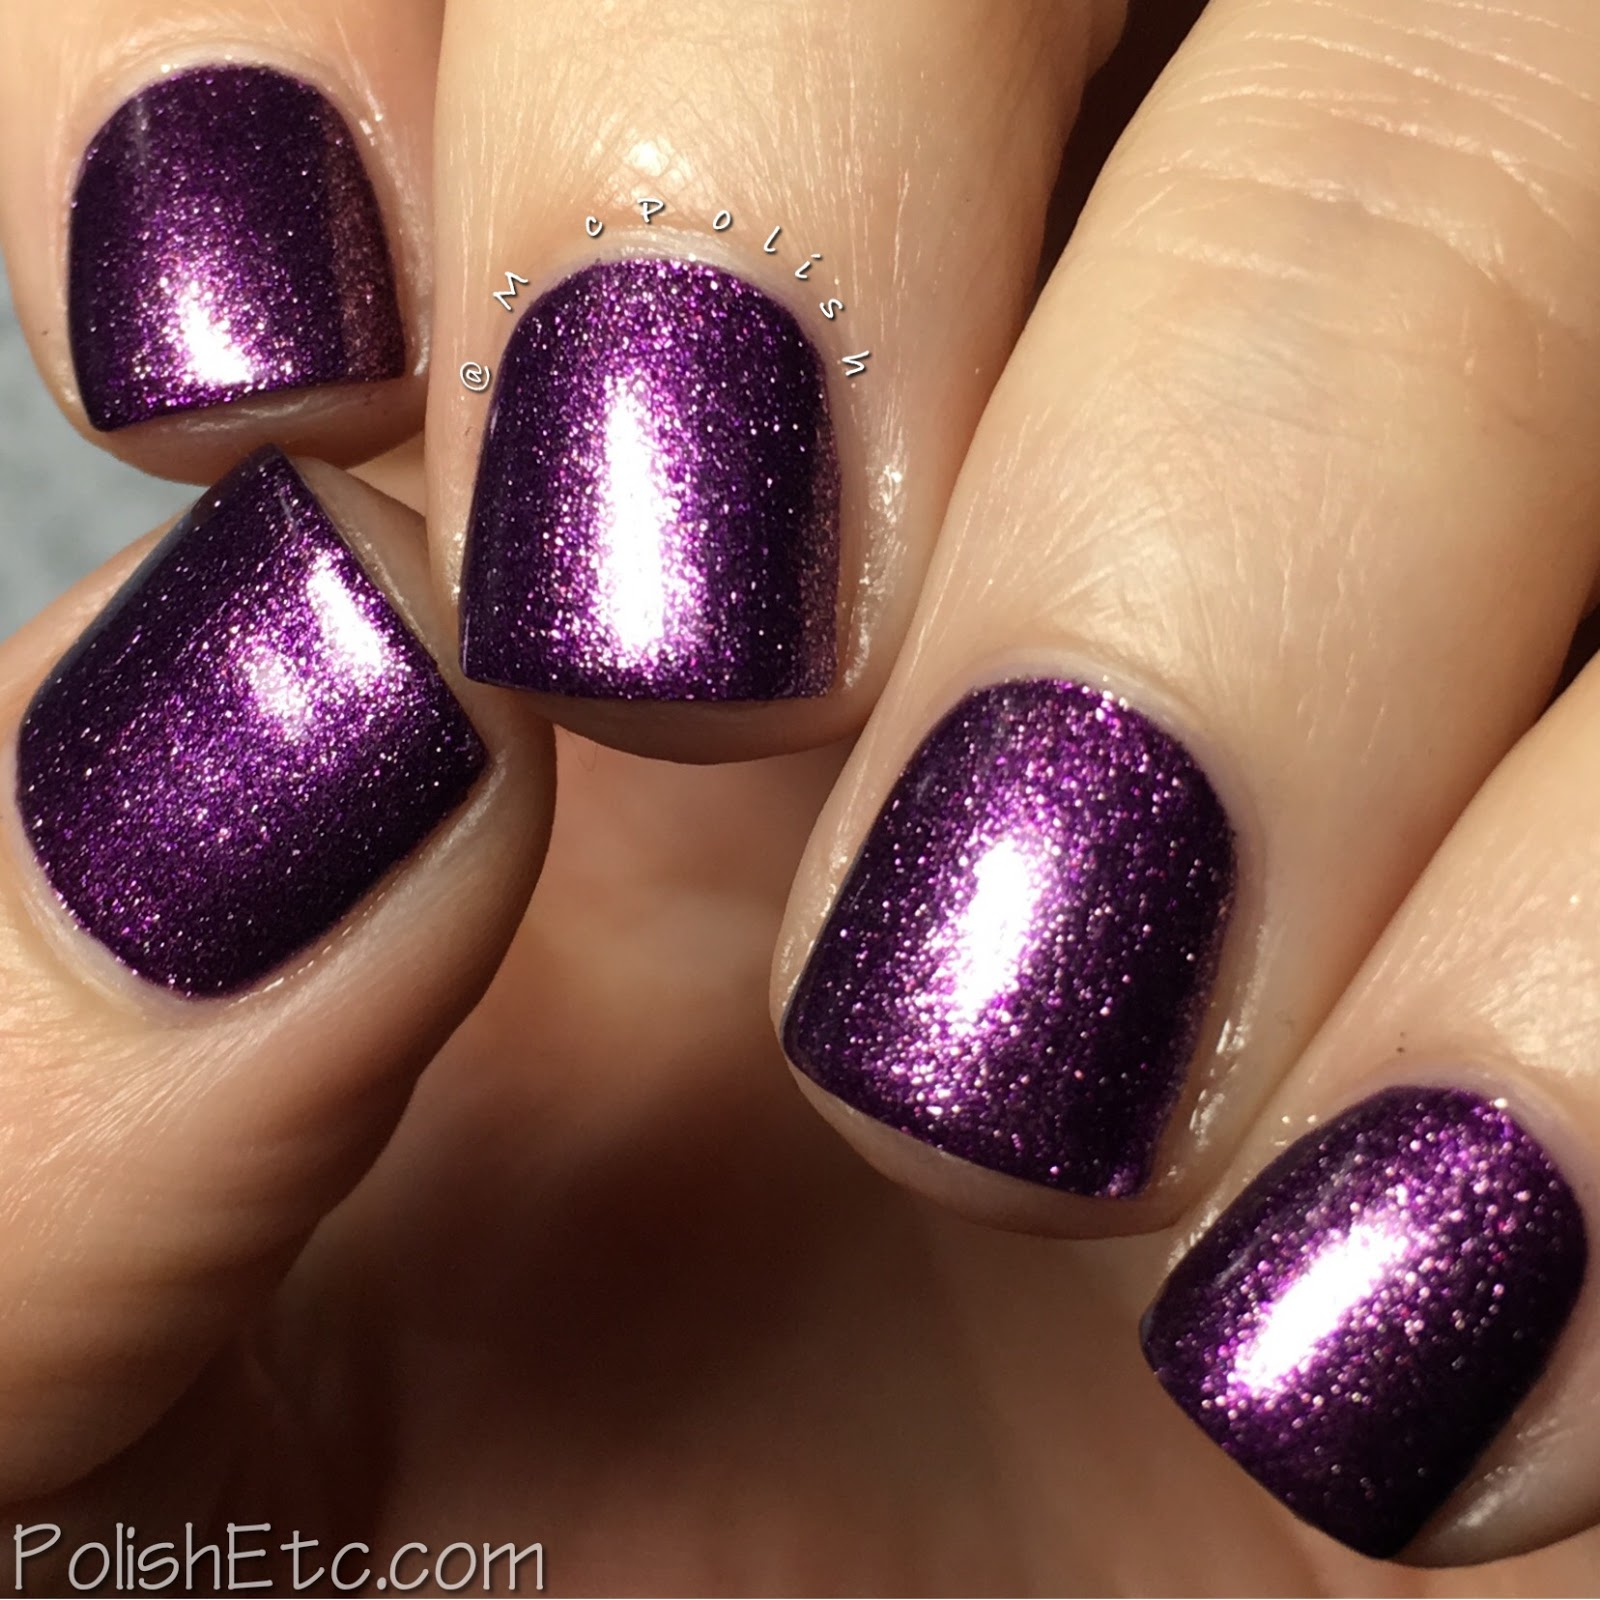 Pahlish - Life Aquatic Collection - McPolish - Lady Stardust